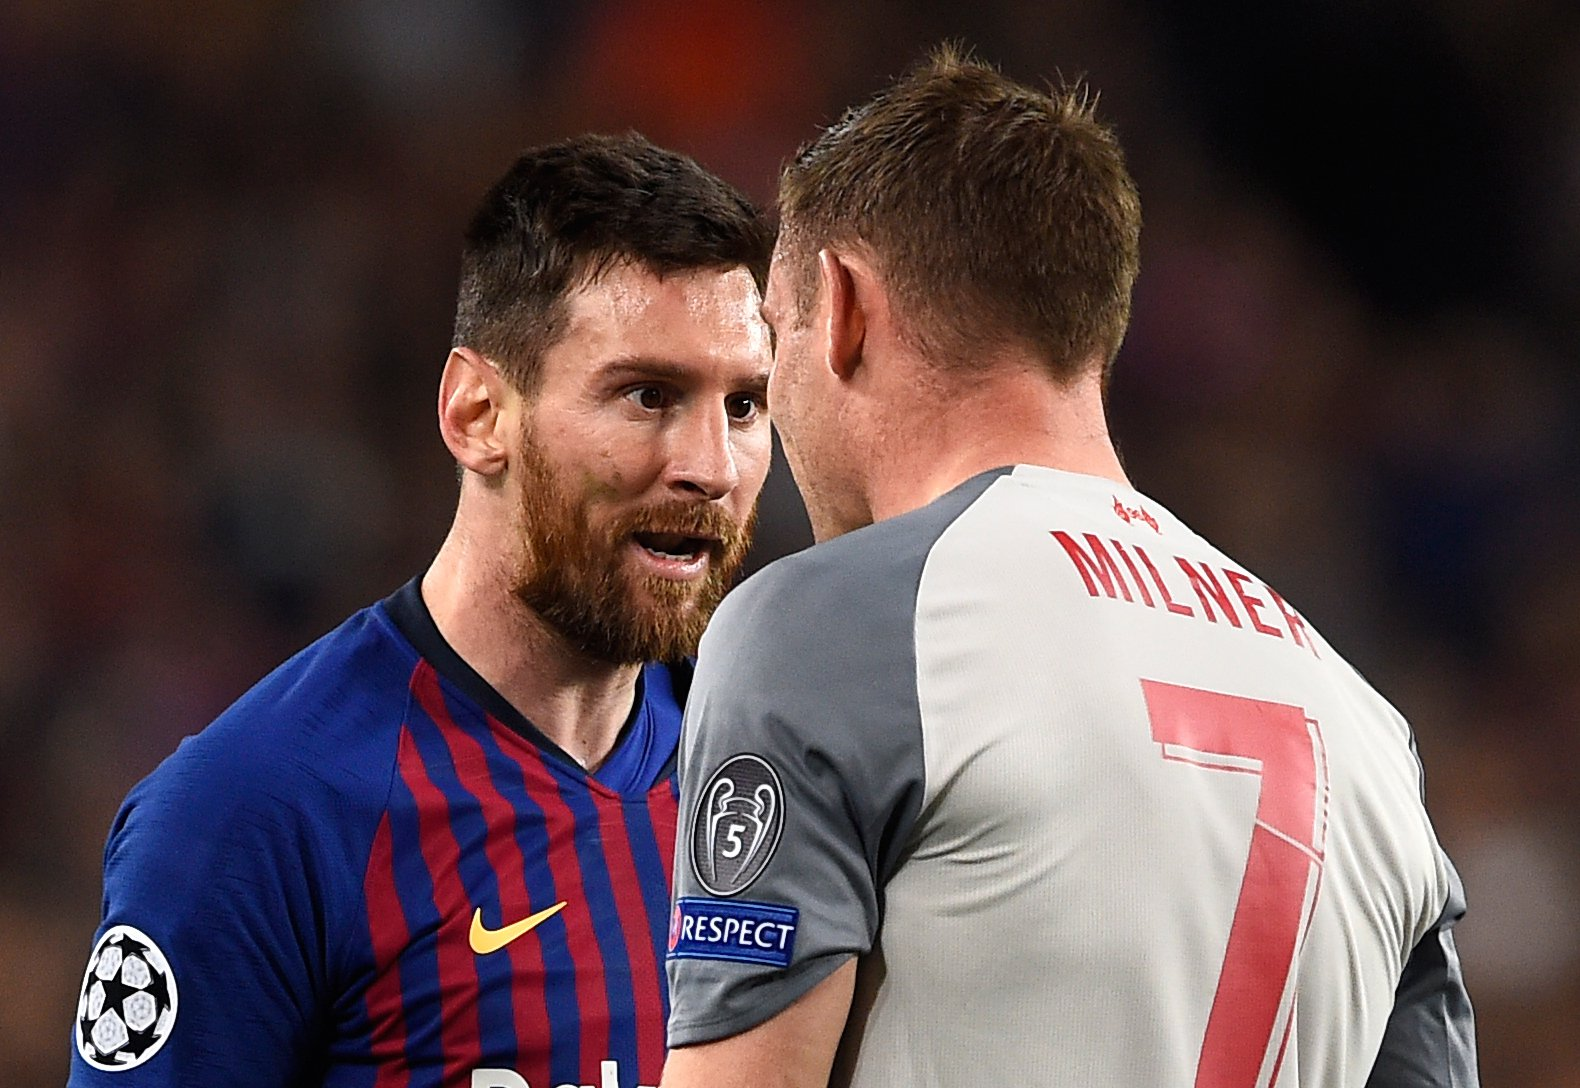 Lionel Messi called James Milner a 'donkey' during Liverpool's Champions League clash with Barcelona